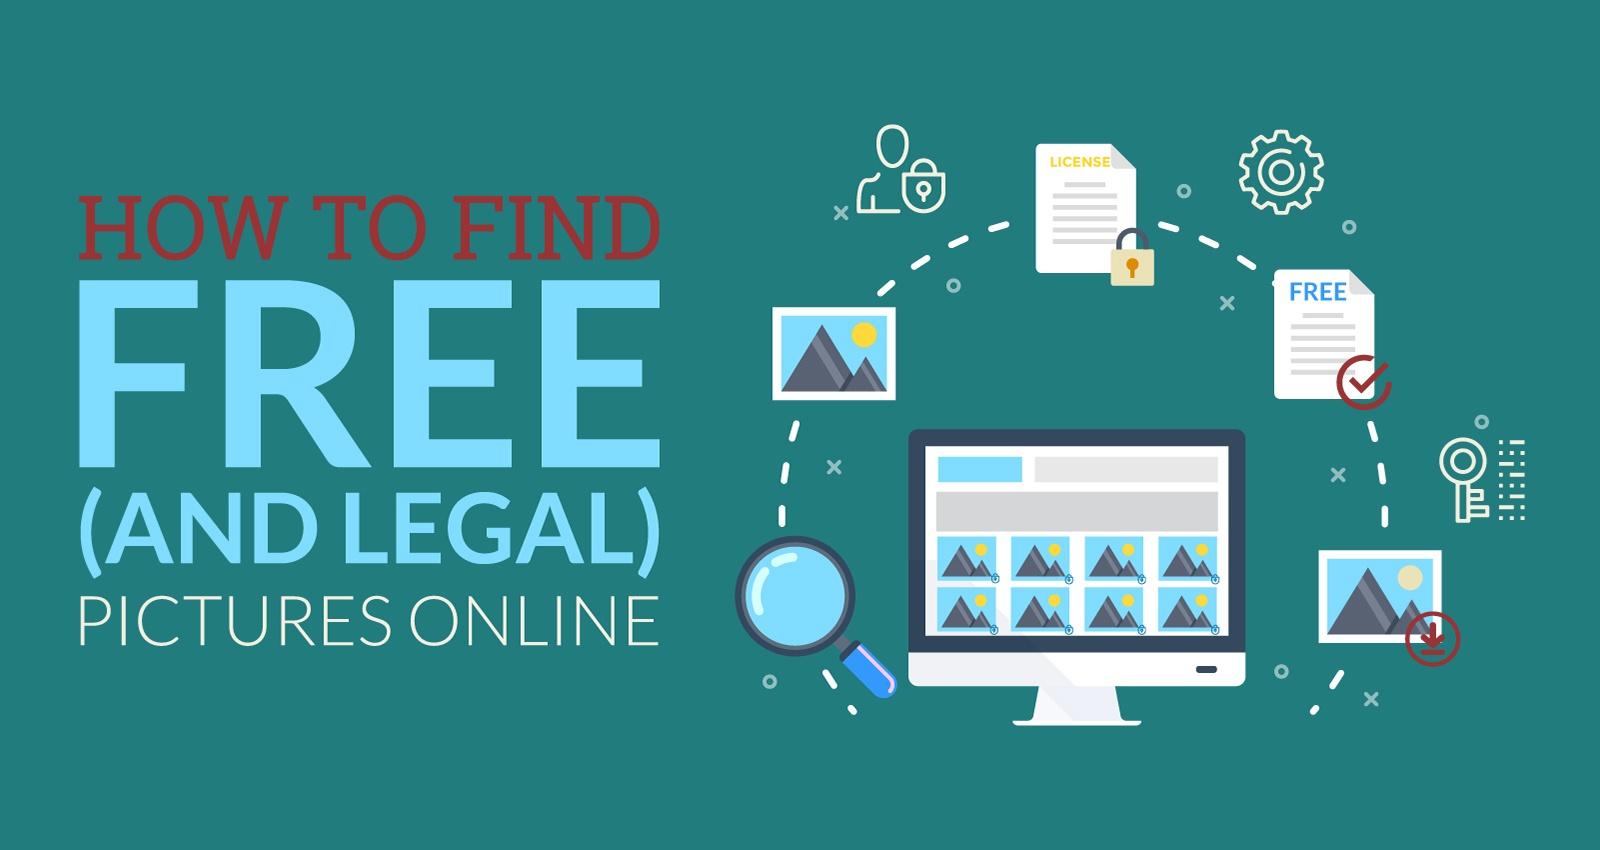 280222 HOW TO FIND FREE AND LEGAL PICTURES ONLINE Opt1 090418